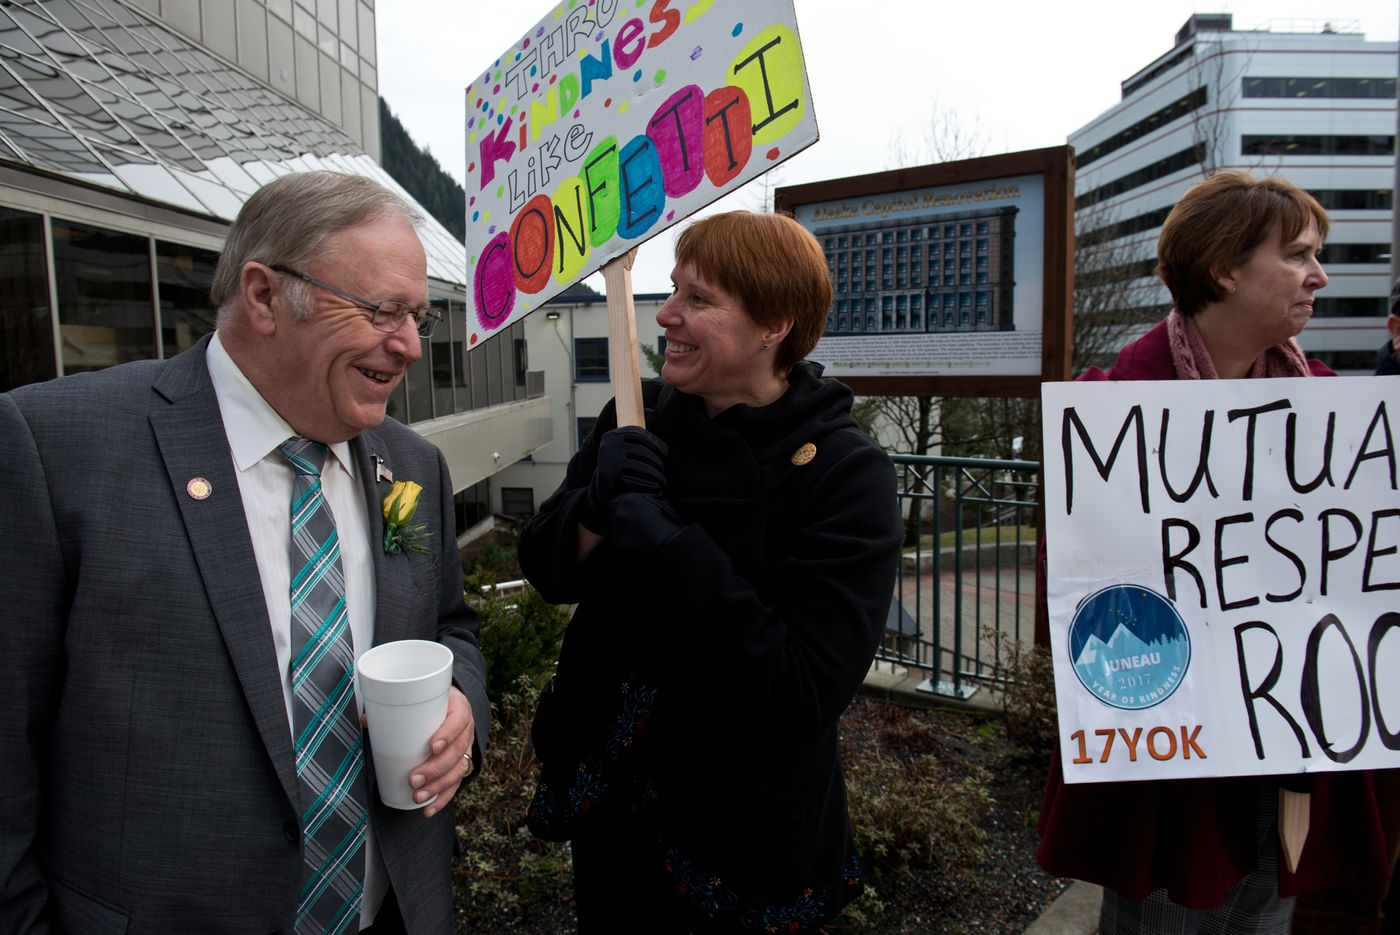 """Rep. Mike Chenault, R-Nikiski, talks with Kris Sell, a Juneau police lieutenant, outside the Capitol. Sell, holdinga sign that says """"Spread kindness like confetti,"""" participated in a rally for encouragement of lawmakers, part of the """"Year of Kindness"""" campaign."""